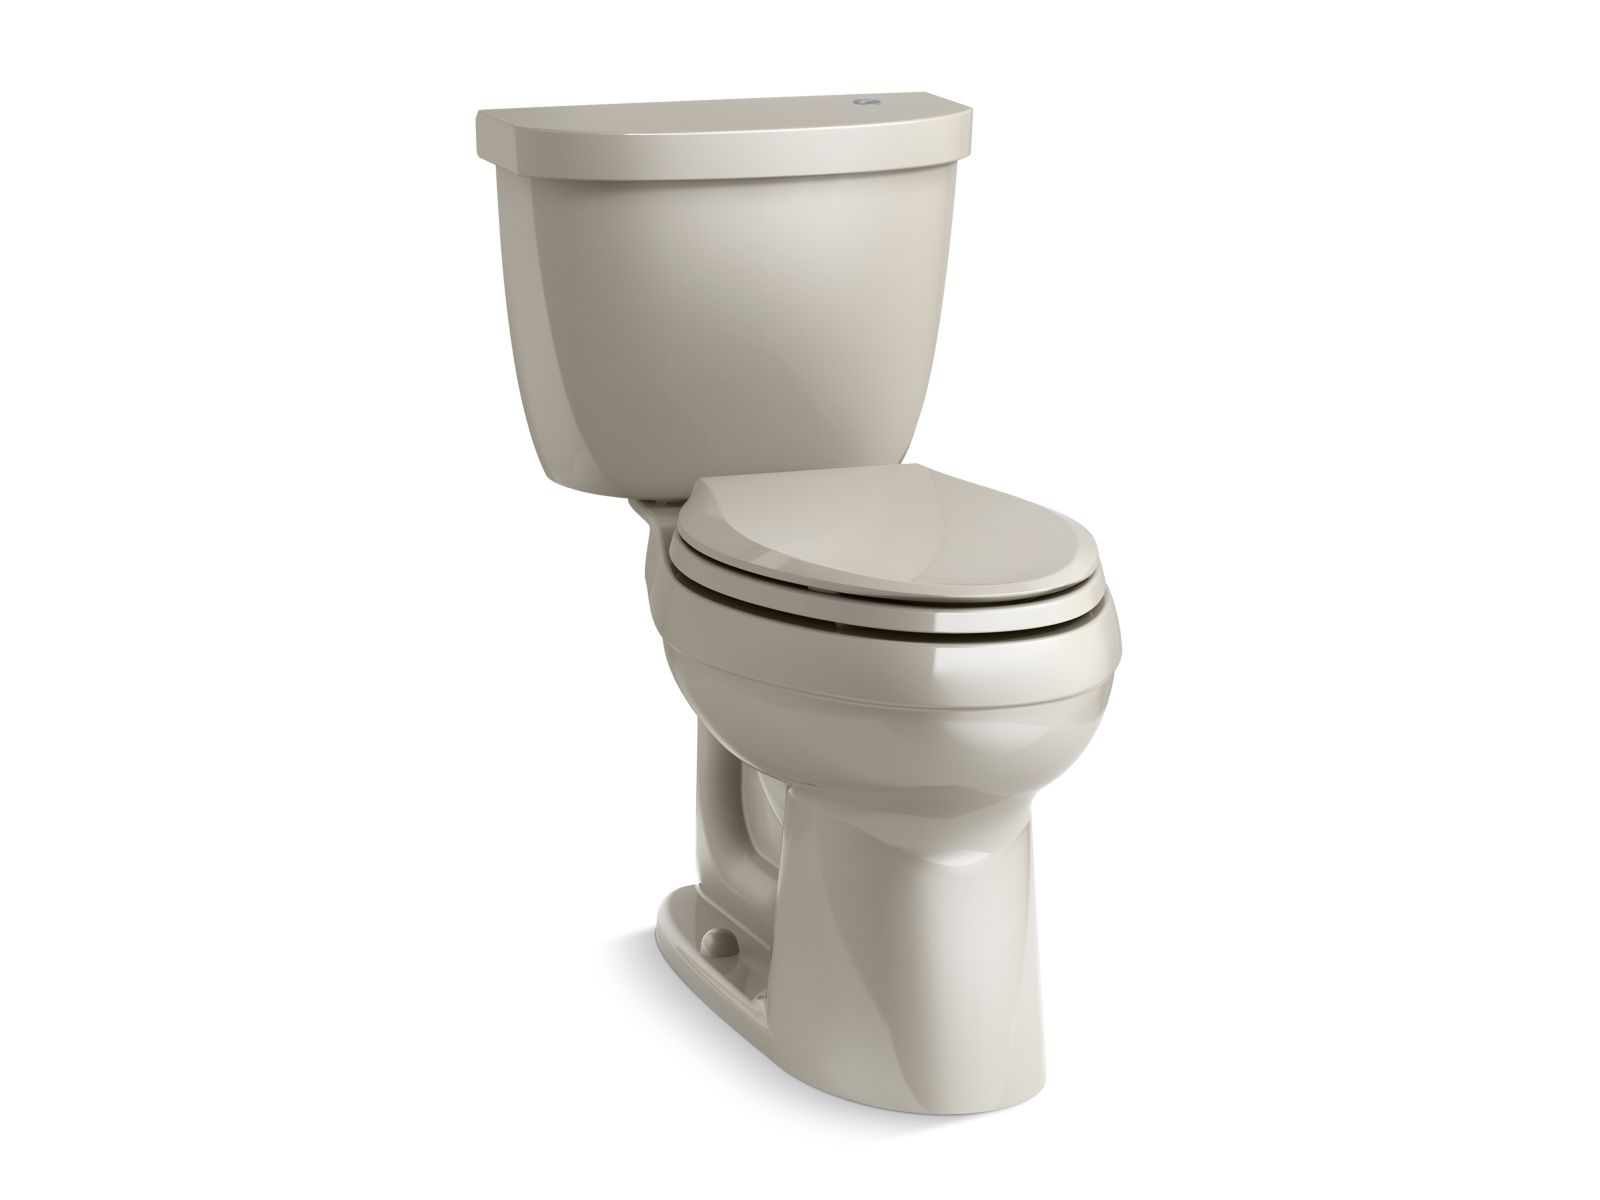 Kohler Cimarron® K-6418-G9 Touchless Comfort Height® two-piece elongated 1.28 gpf toilet with AquaPiston® flushing technology Sandbar